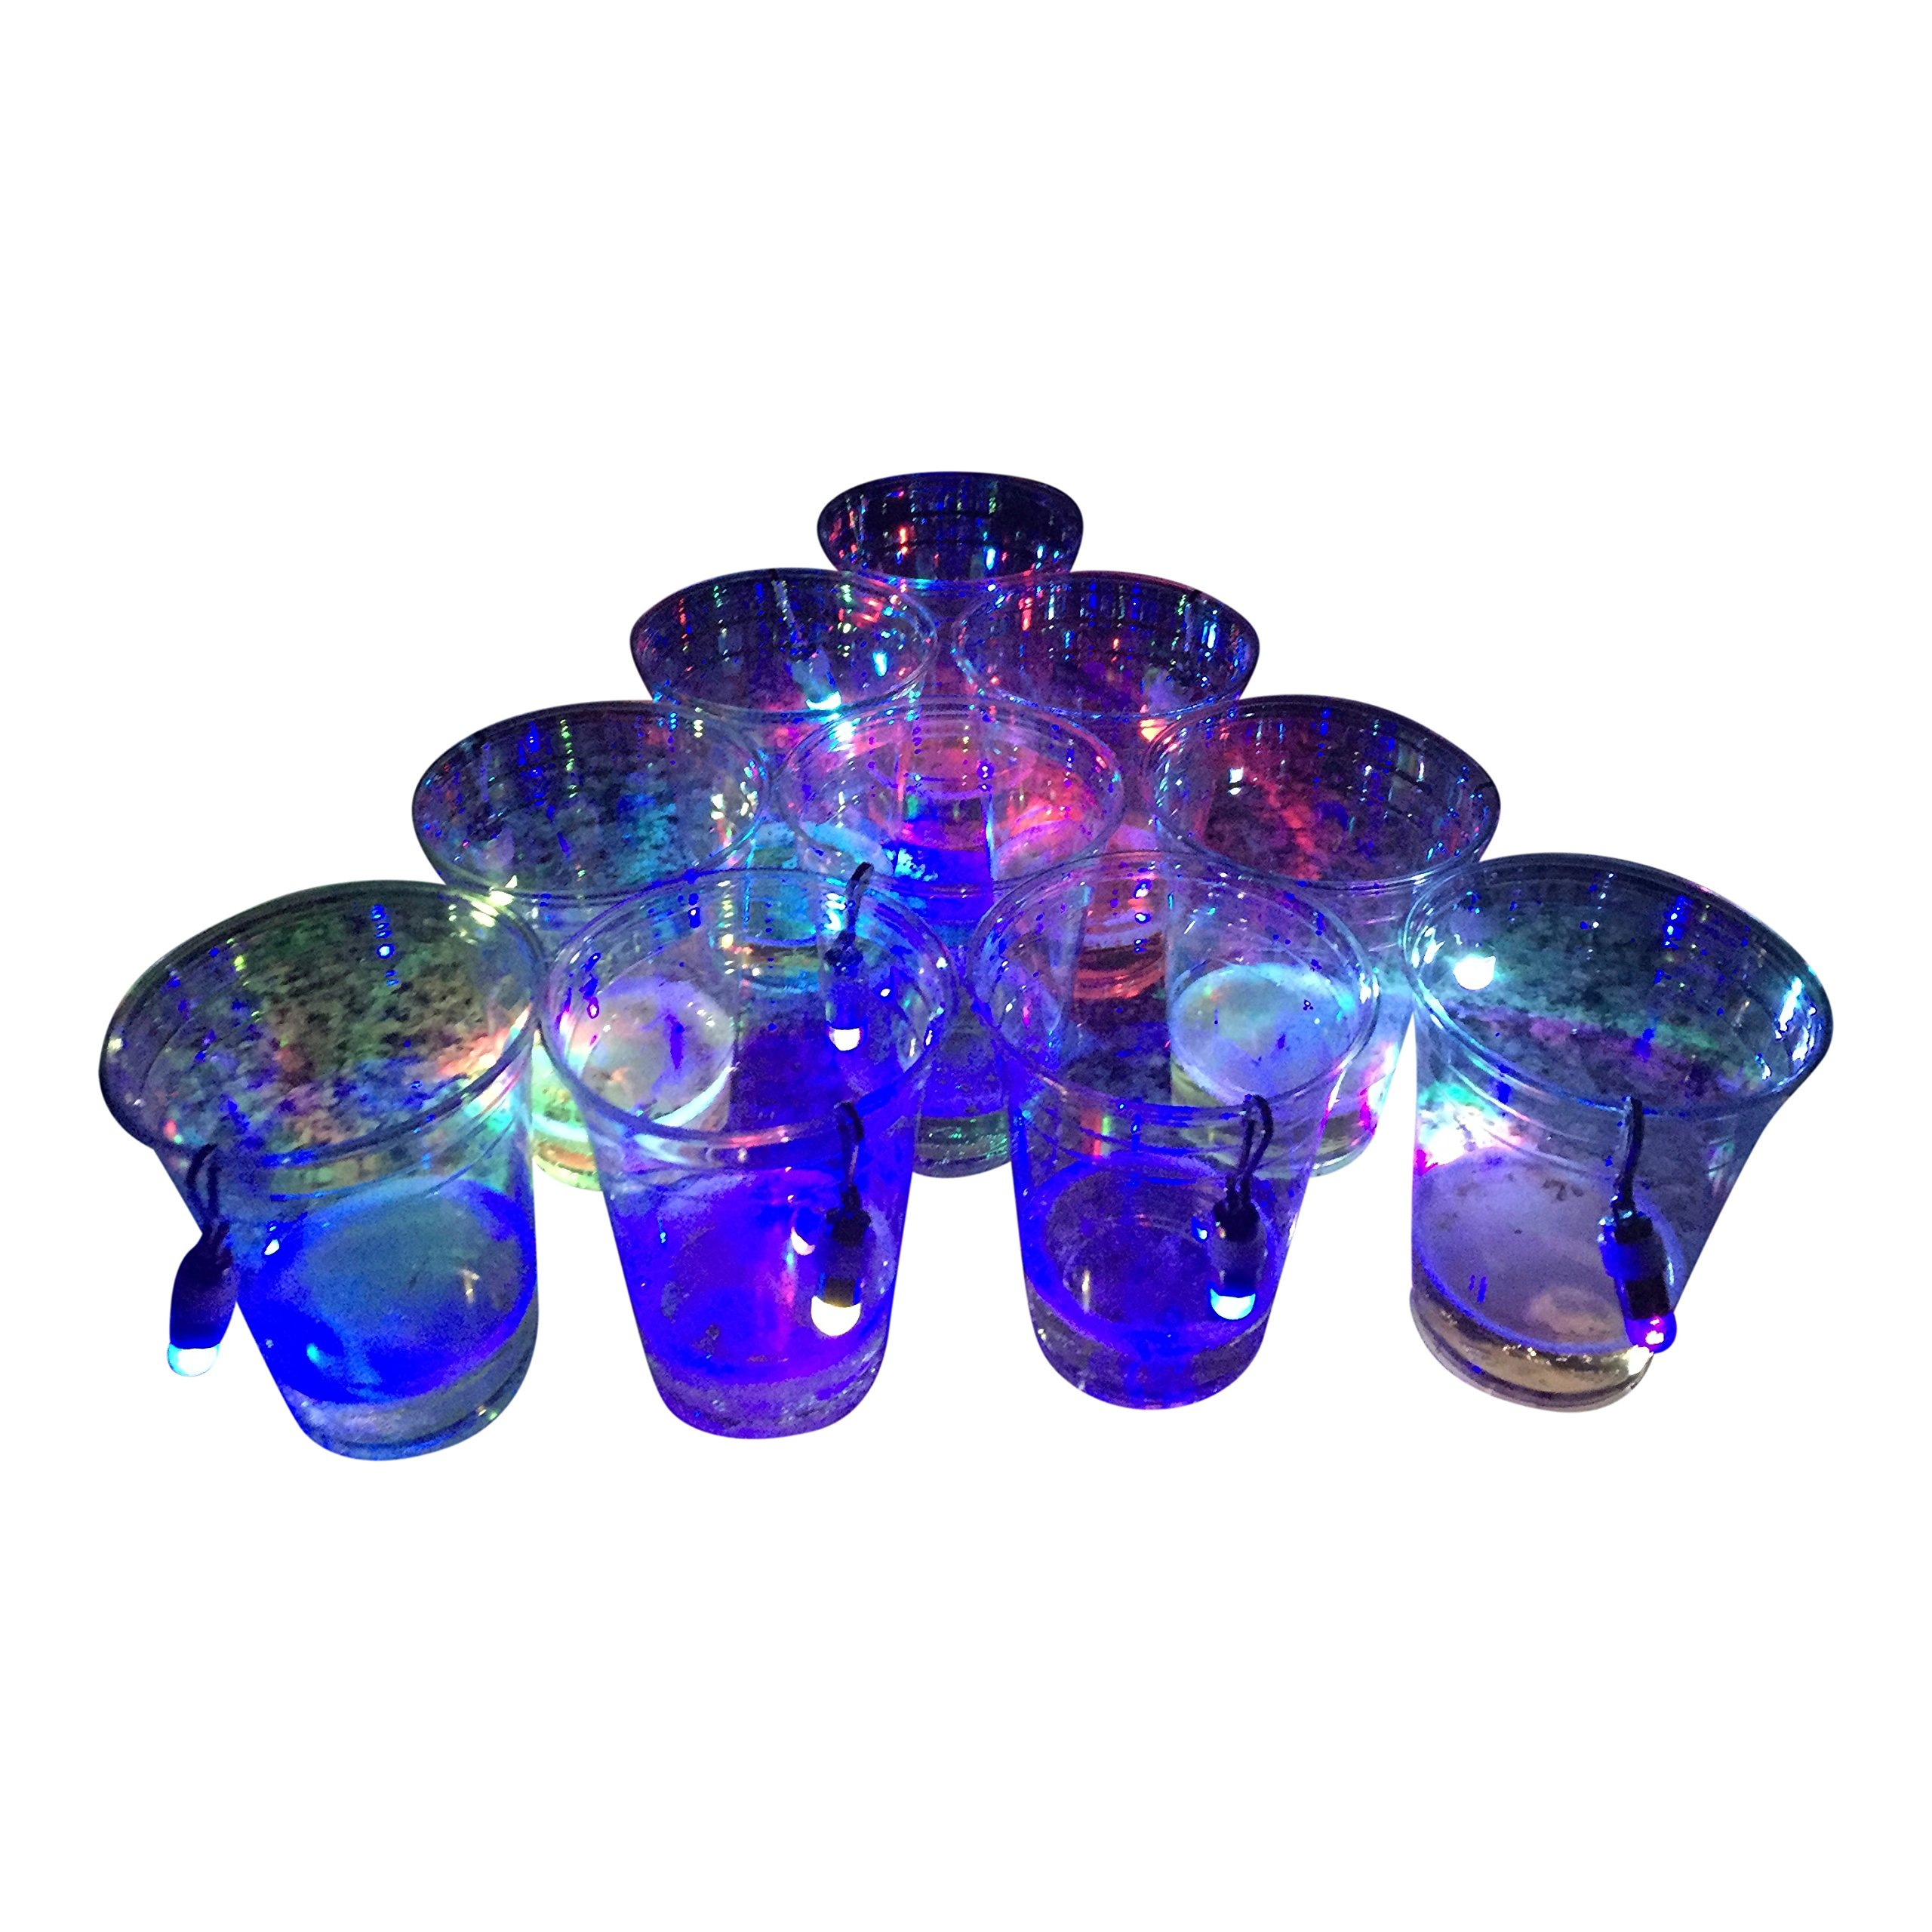 Slip Cup - Midnight Pong: Light Up Beer Pong- It's Lit! 22 Cups & 22 Led Lights